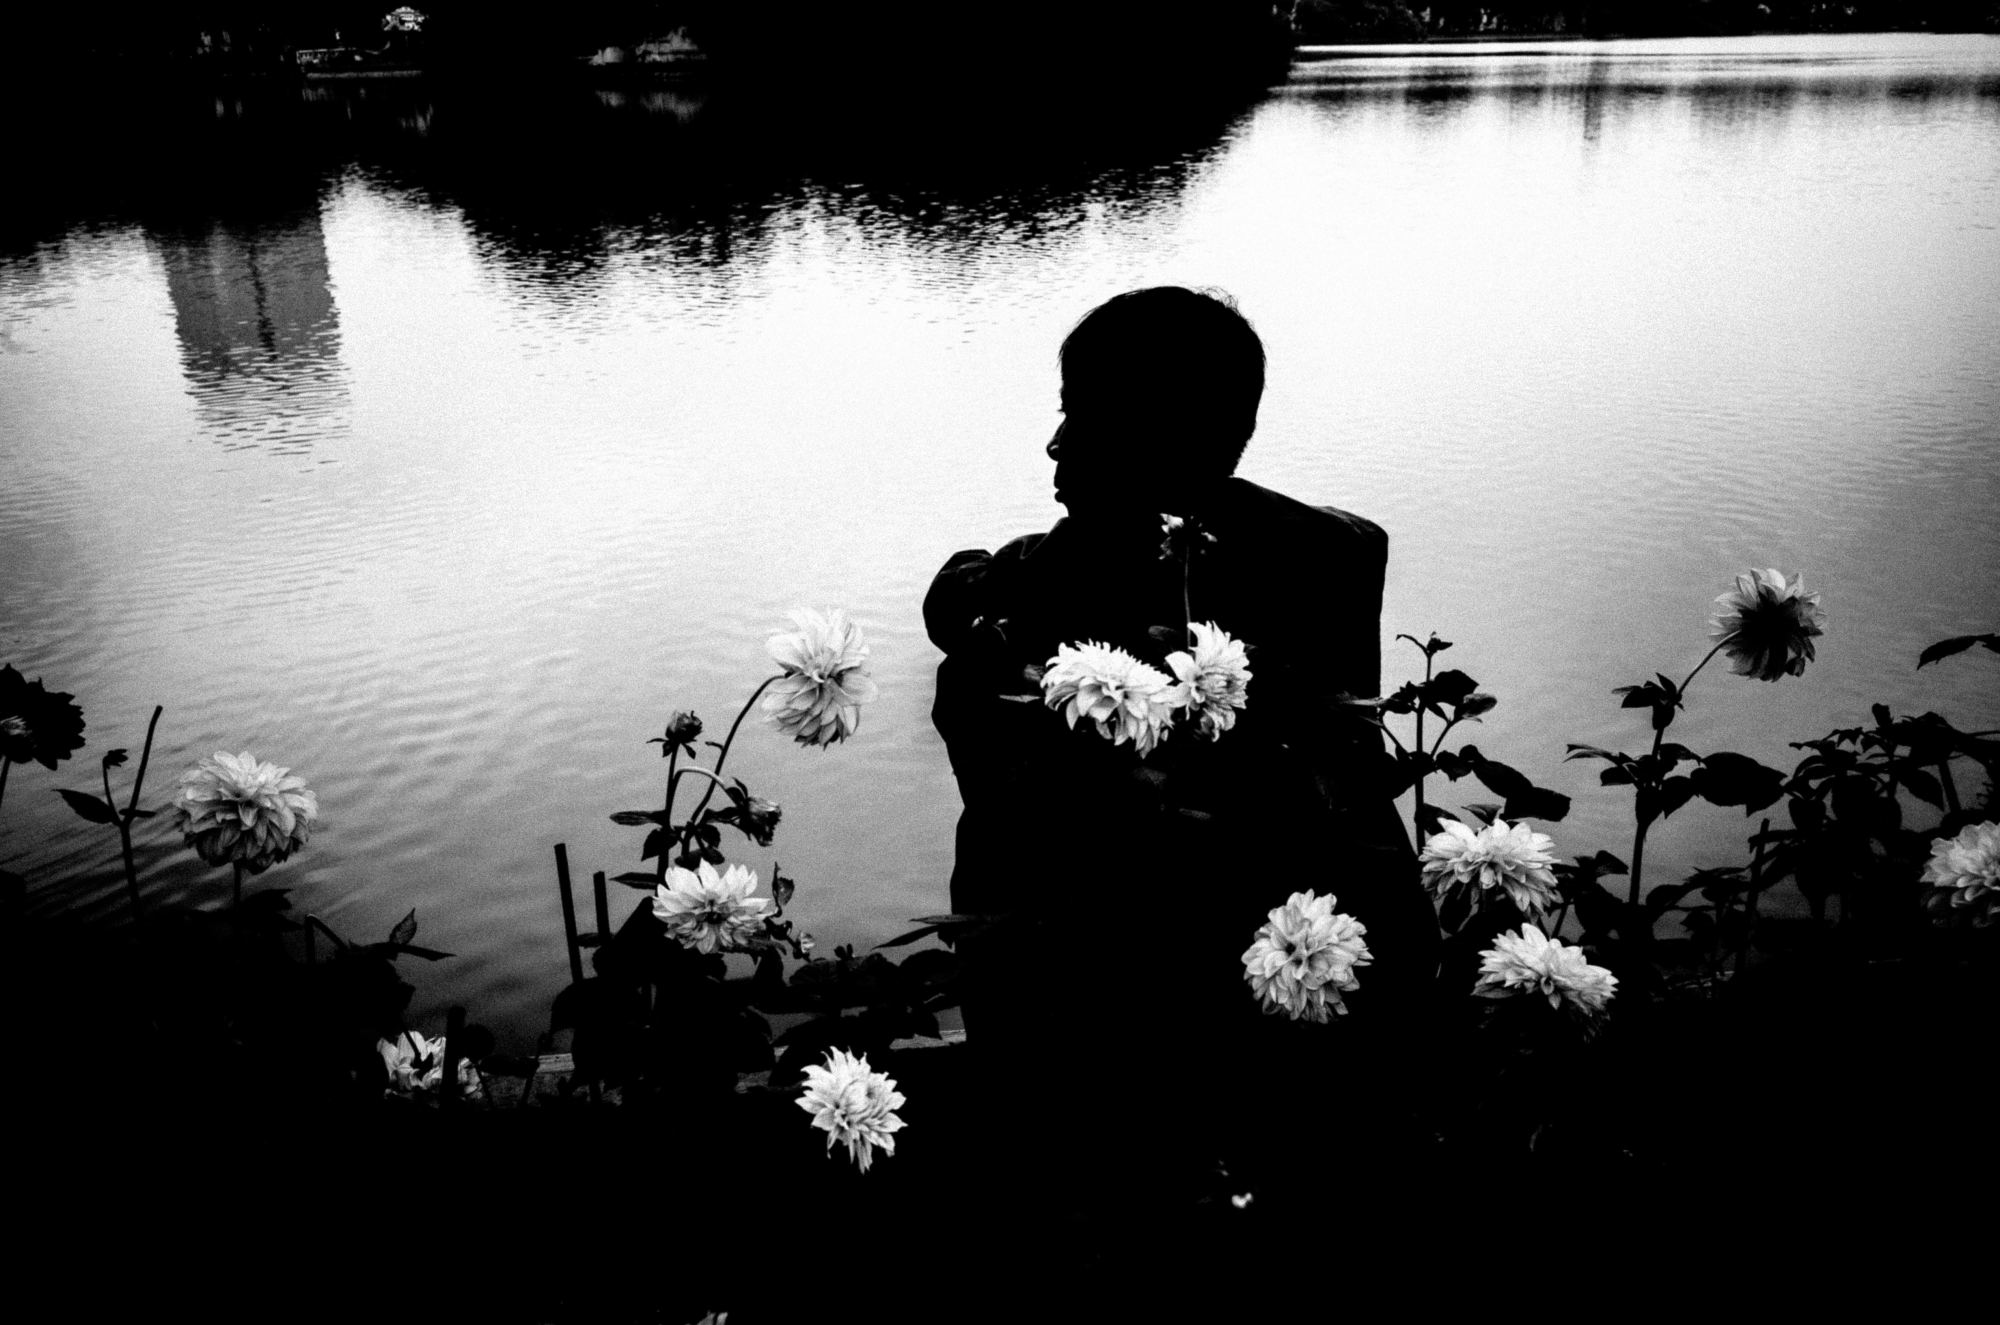 Man in silhouette. Street photograph at Hoan Kiem lake in Hanoi, 2017 / ERIC KIM